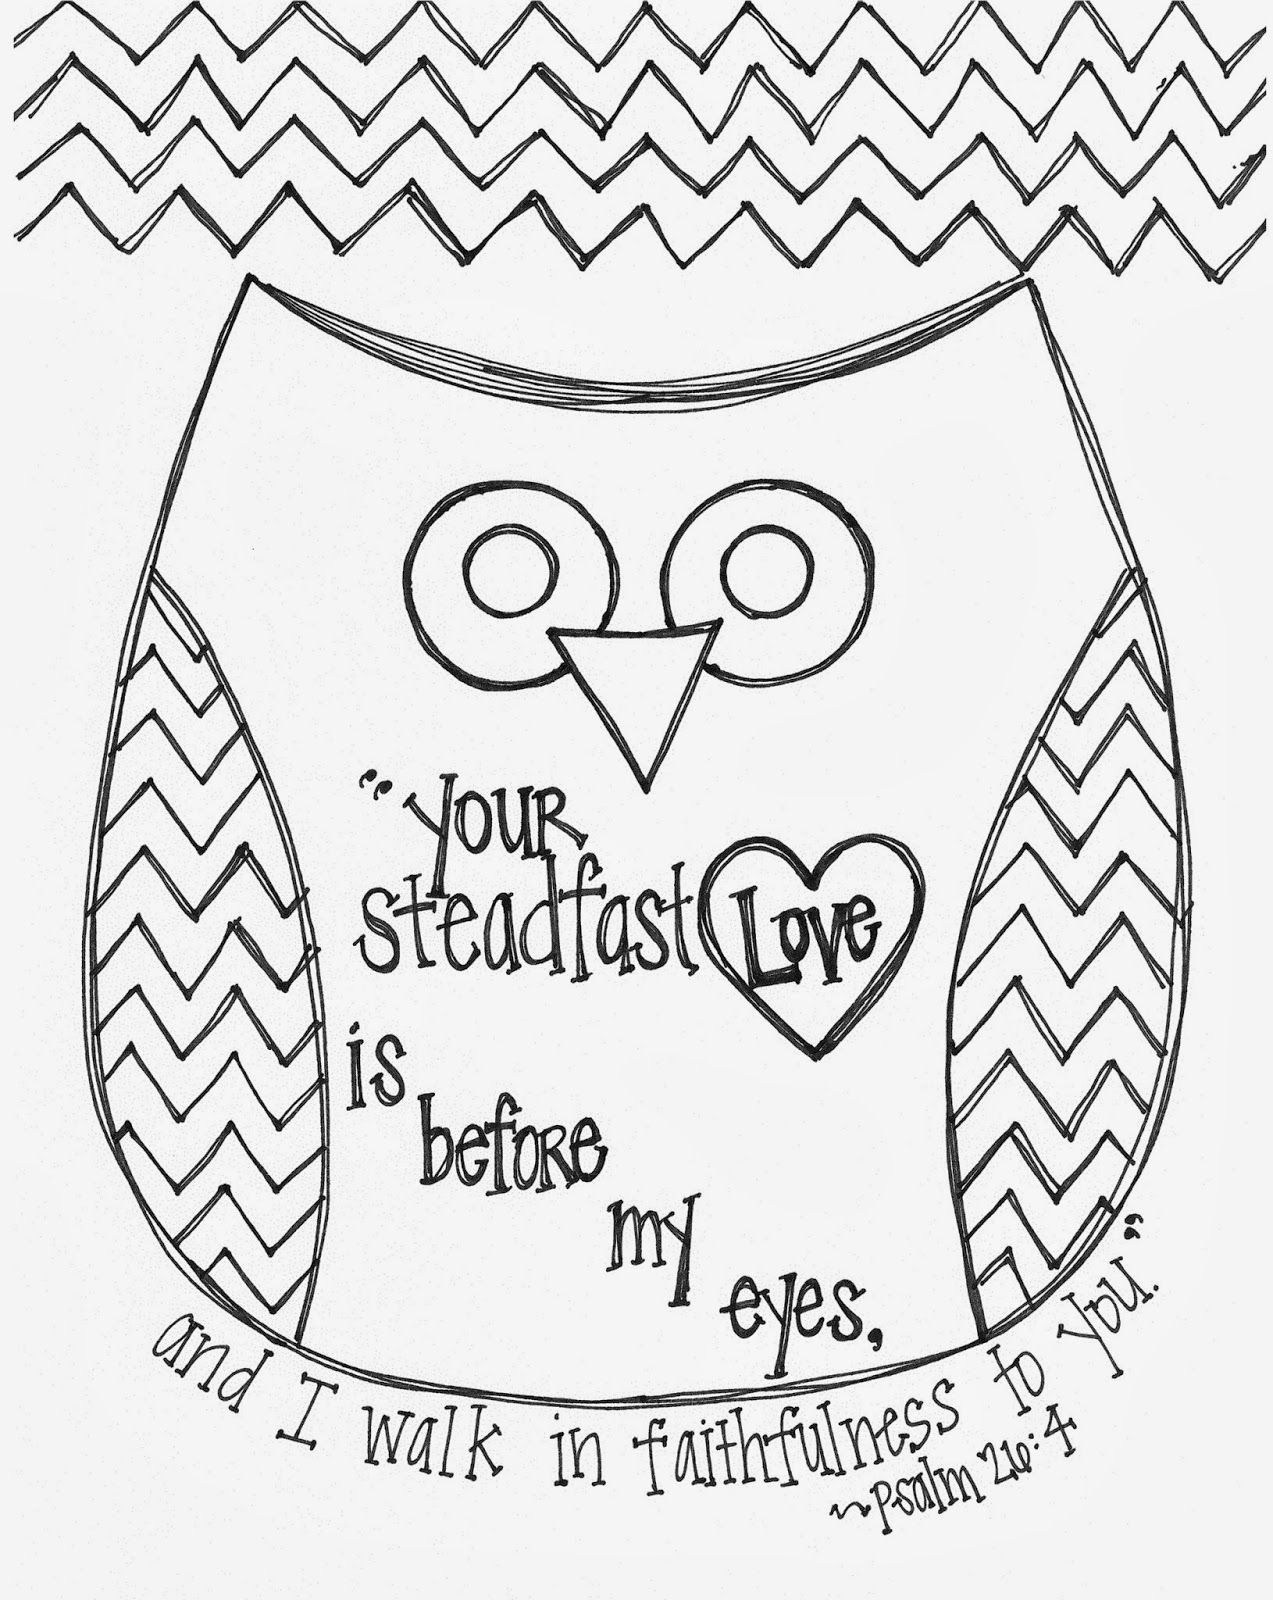 colossians 323 bible verse coloring sheet for sunday school new crafts on danielles place of crafts and activities pinterest sunday school